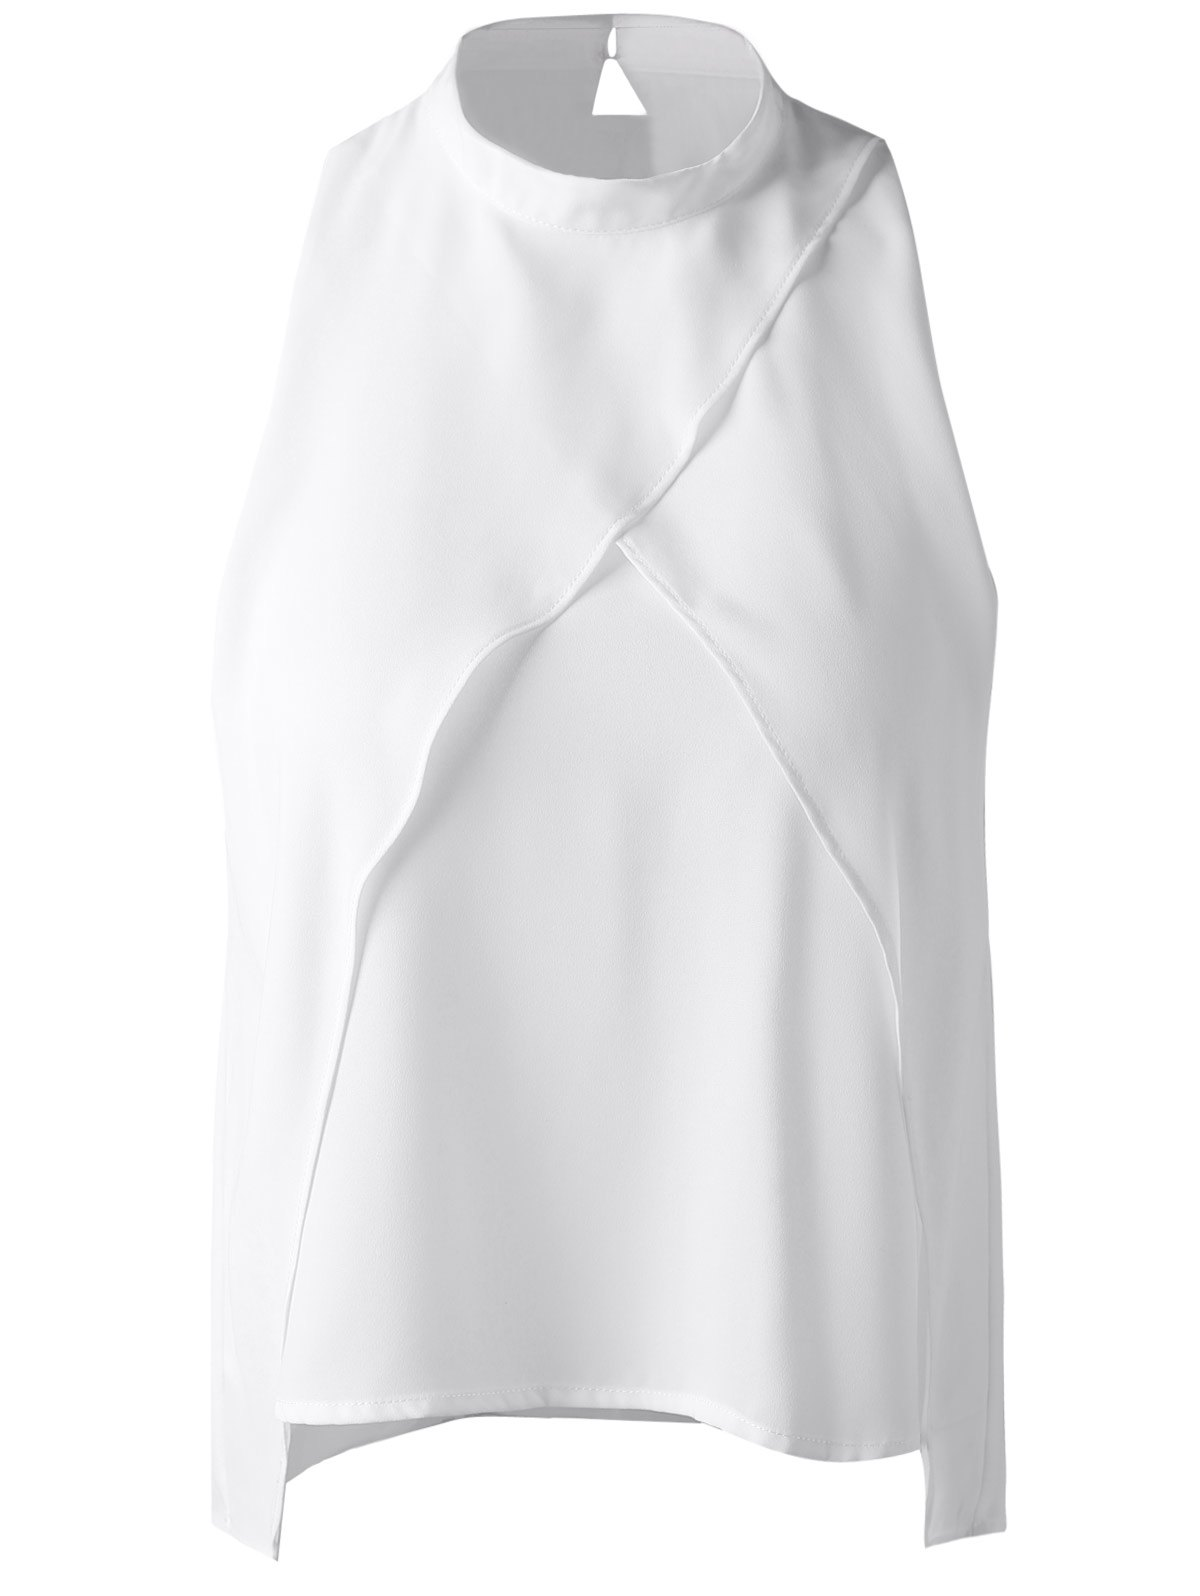 Chic Fashionable Cut-Out Stand Collar Top For Women